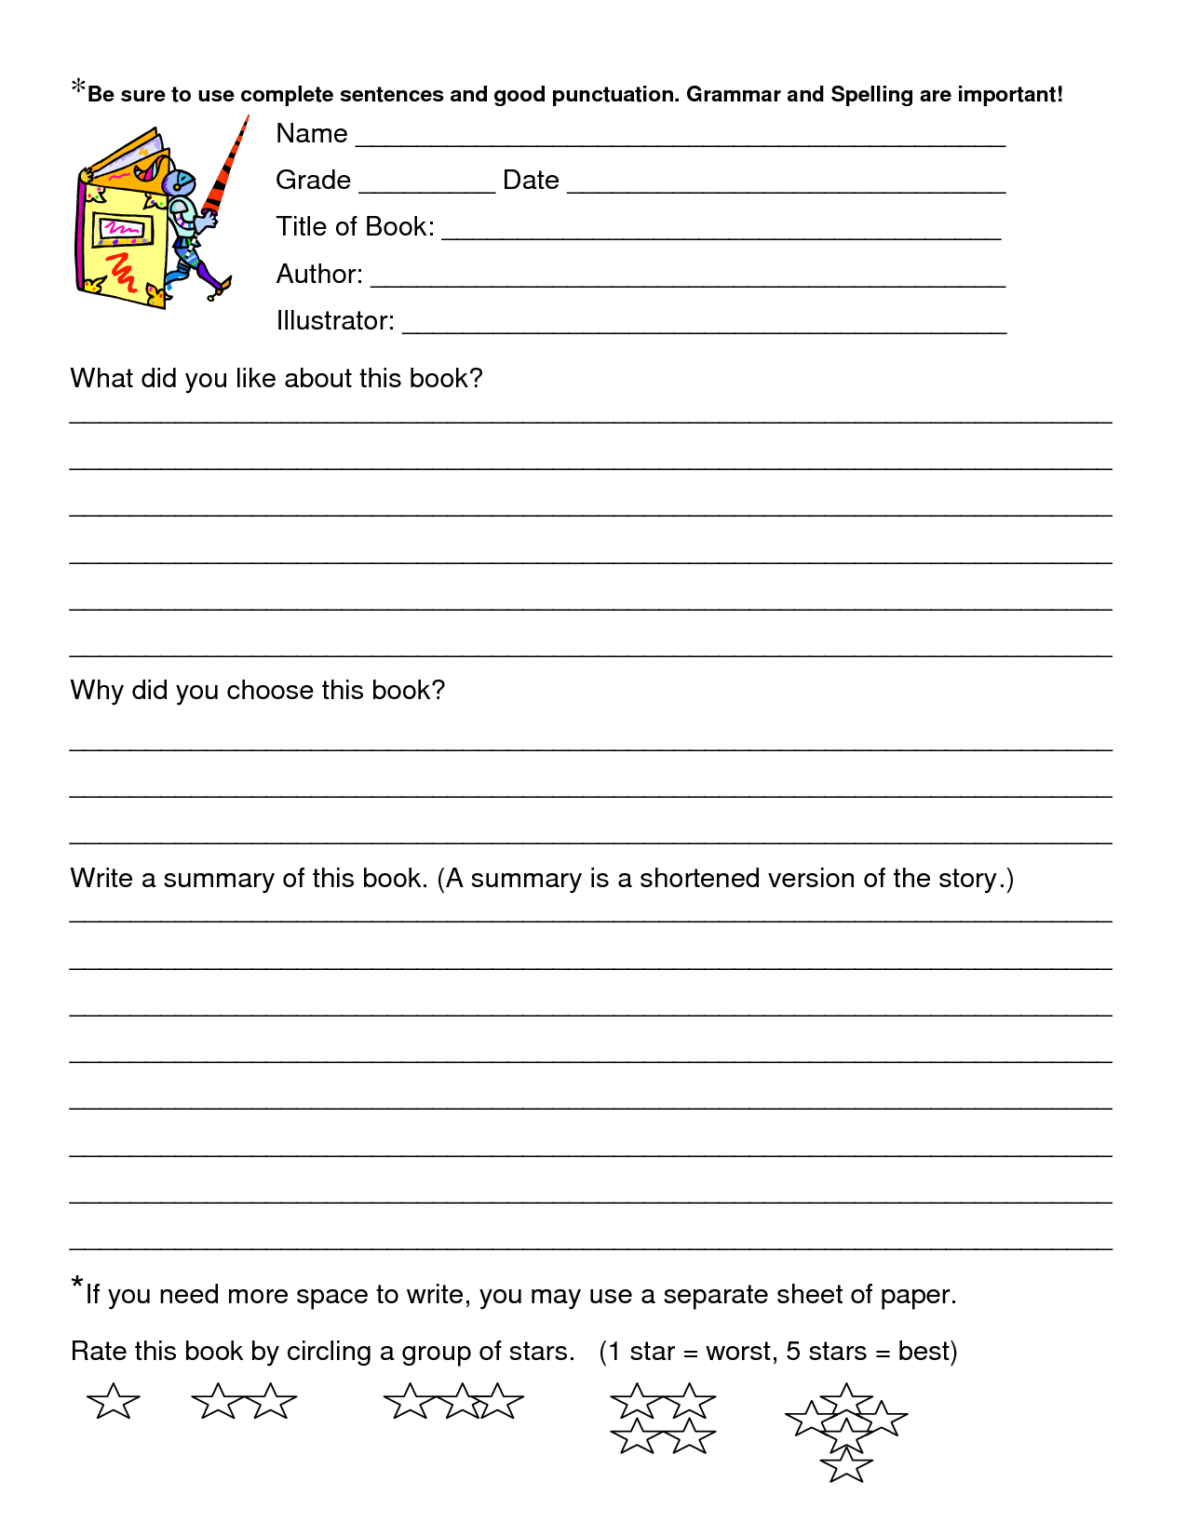 Book Review Worksheet Grade 5   Printable Worksheets And with Book Report  Template 6Th Grade   Book report templates [ 1536 x 1187 Pixel ]